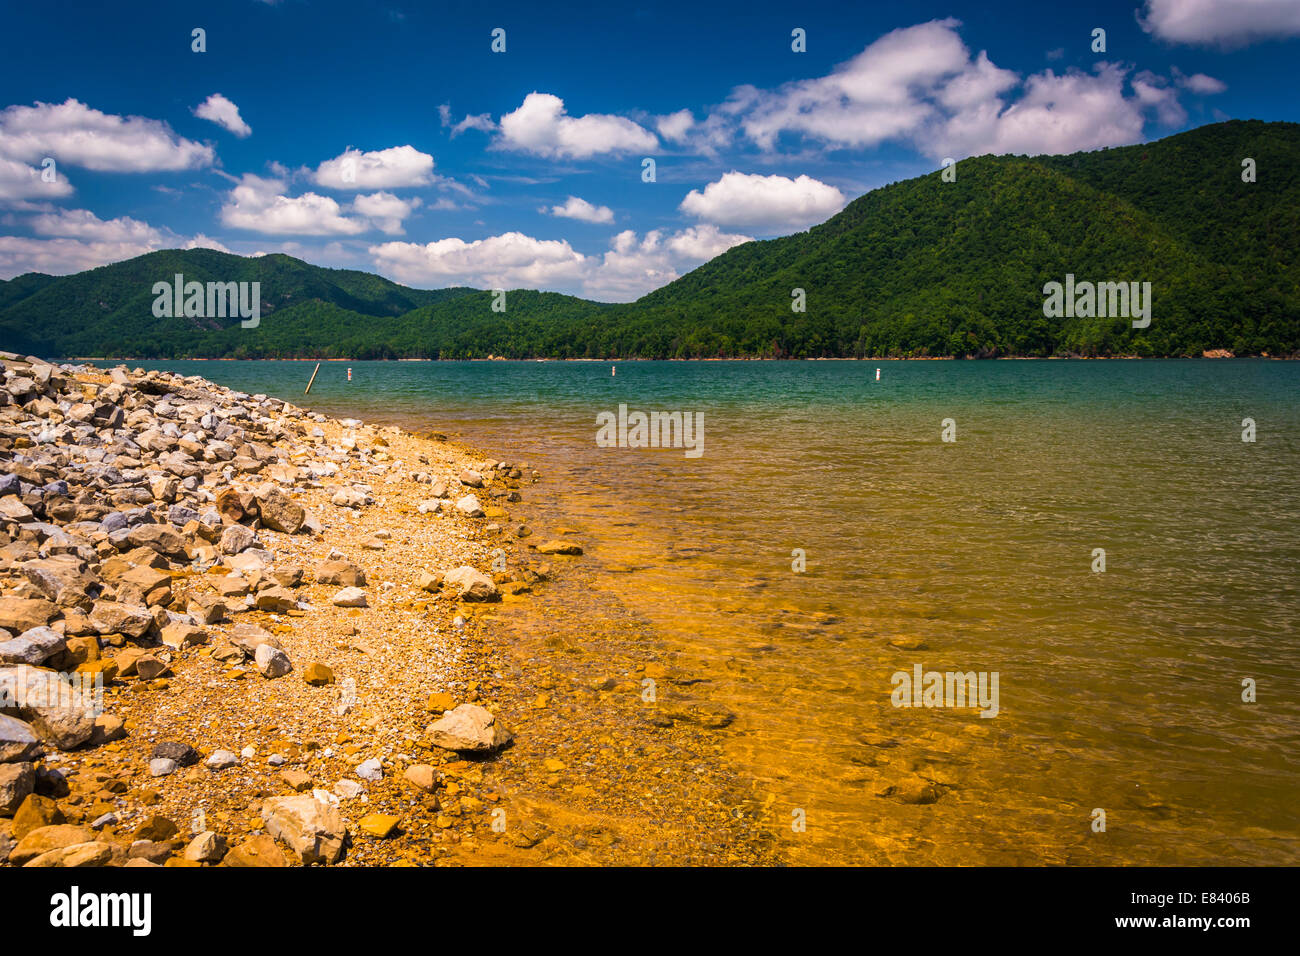 The rocky shore of  Watauga Lake, in Cherokee National Forest, Tennessee. - Stock Image